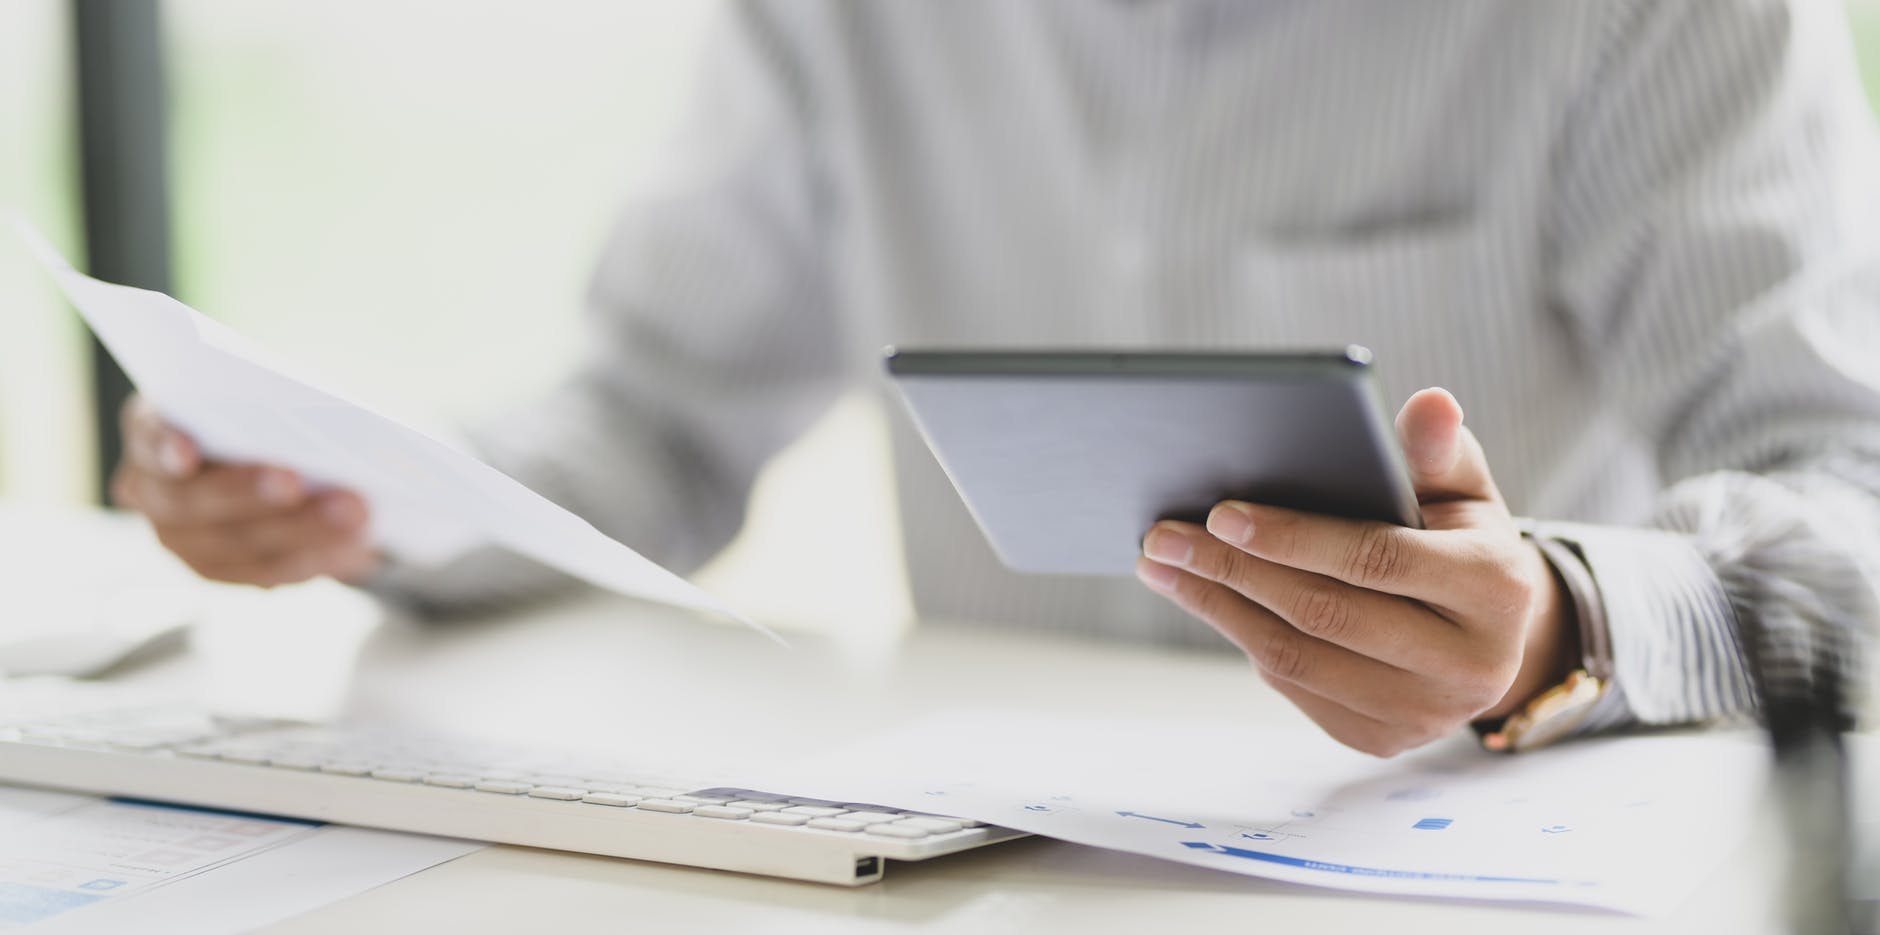 Scan to Practice Management Software for Legal Firms